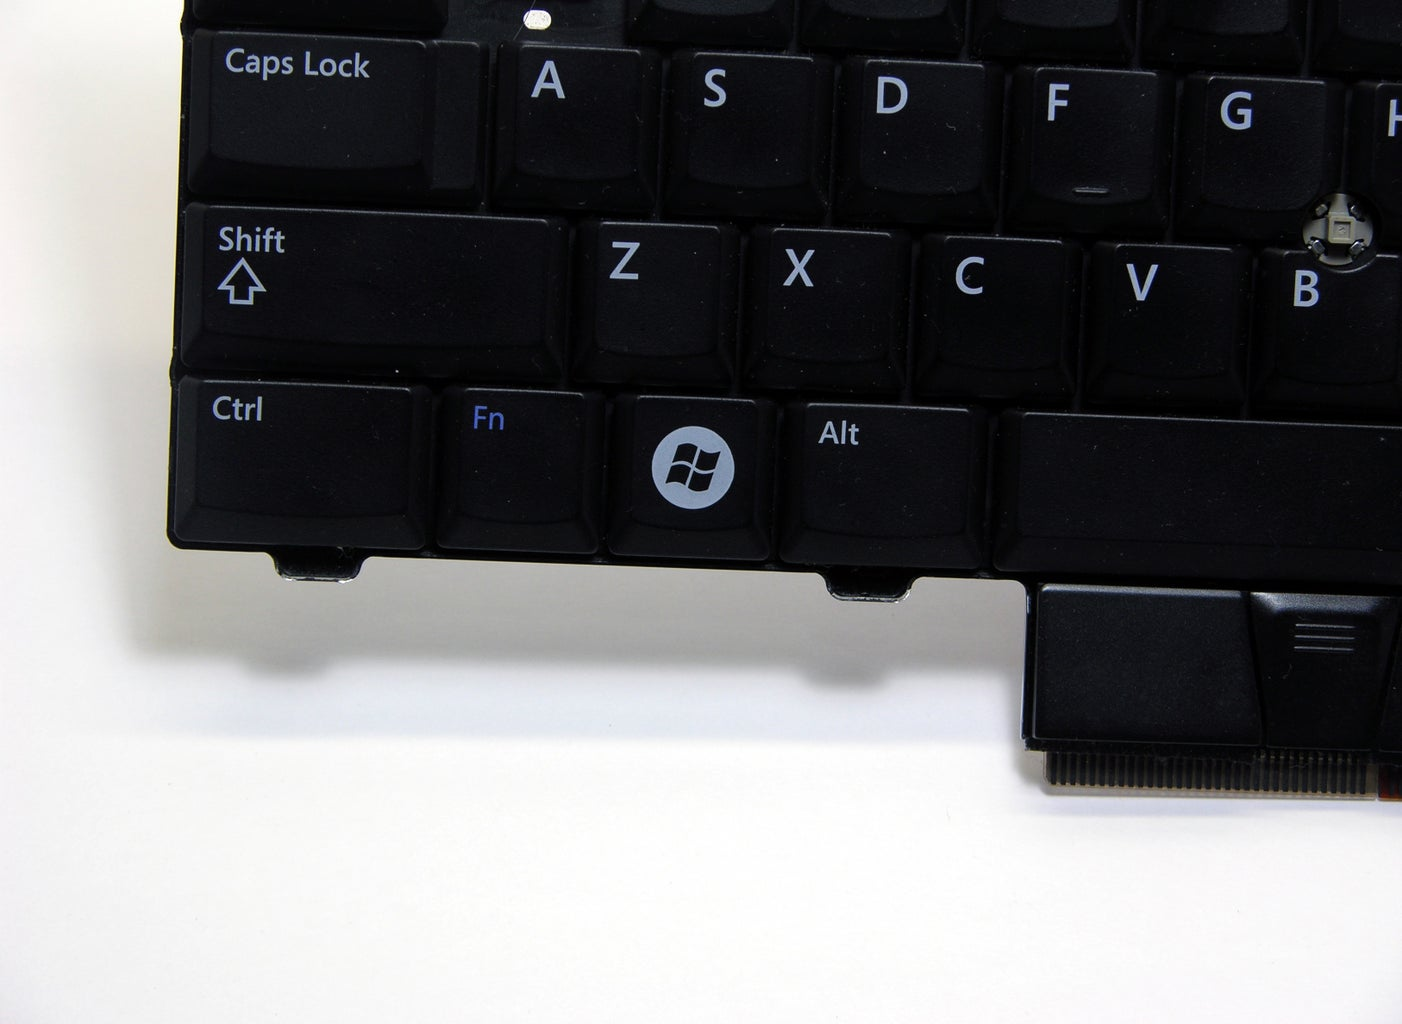 Keyboard Jacket and Shirt Buttons